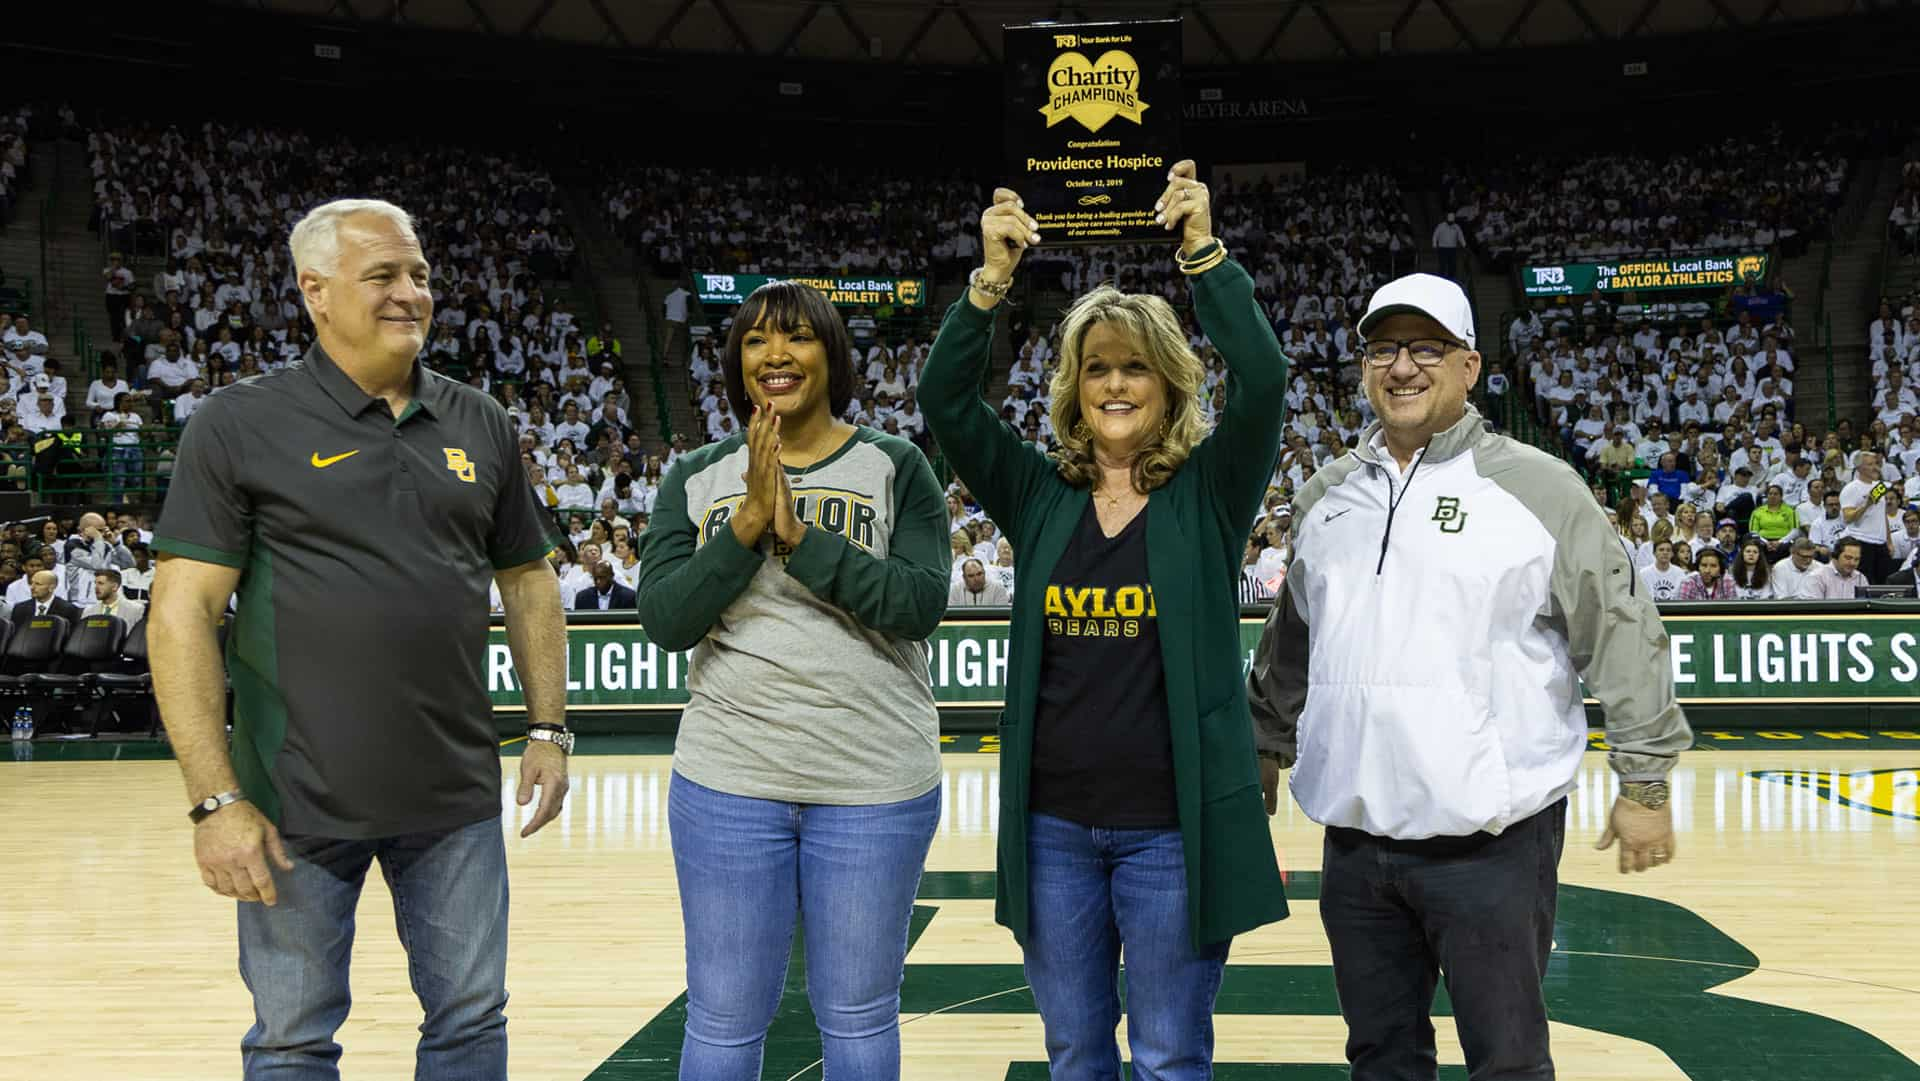 Community Healthcare of Texas recognized at Baylor Men's Basketball Game